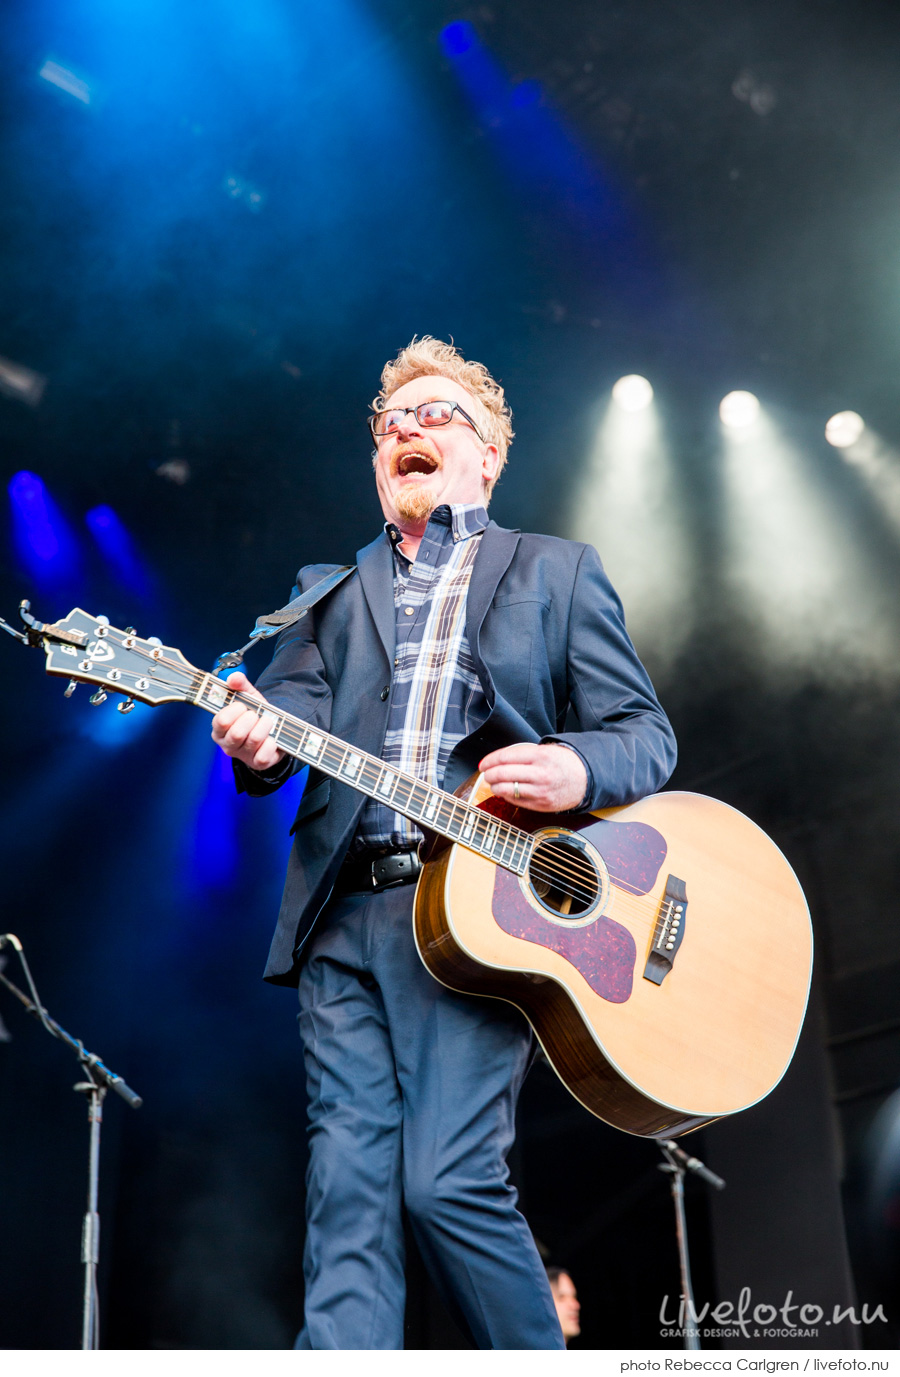 140617-Flogging-Molly-Foto-Rebecca-Carlgren-livefoto-nu-photo--6